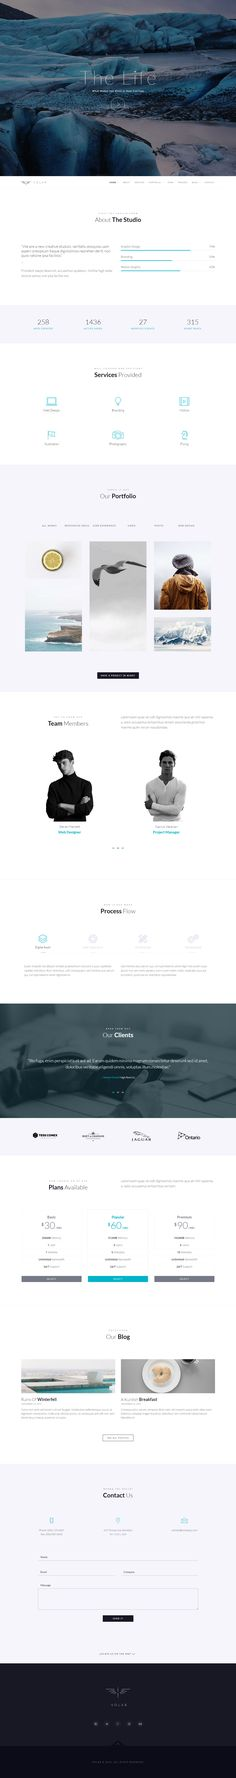 Volar is Premium full Responsive Retina Parallax Drupal Multipurpose Theme. Bootstrap 3 Framework. Video Background. One Page. Test free demo at: http://www.responsivemiracle.com/cms/volar-premium-responsive-one-page-minimal-parallax-drupal-theme/